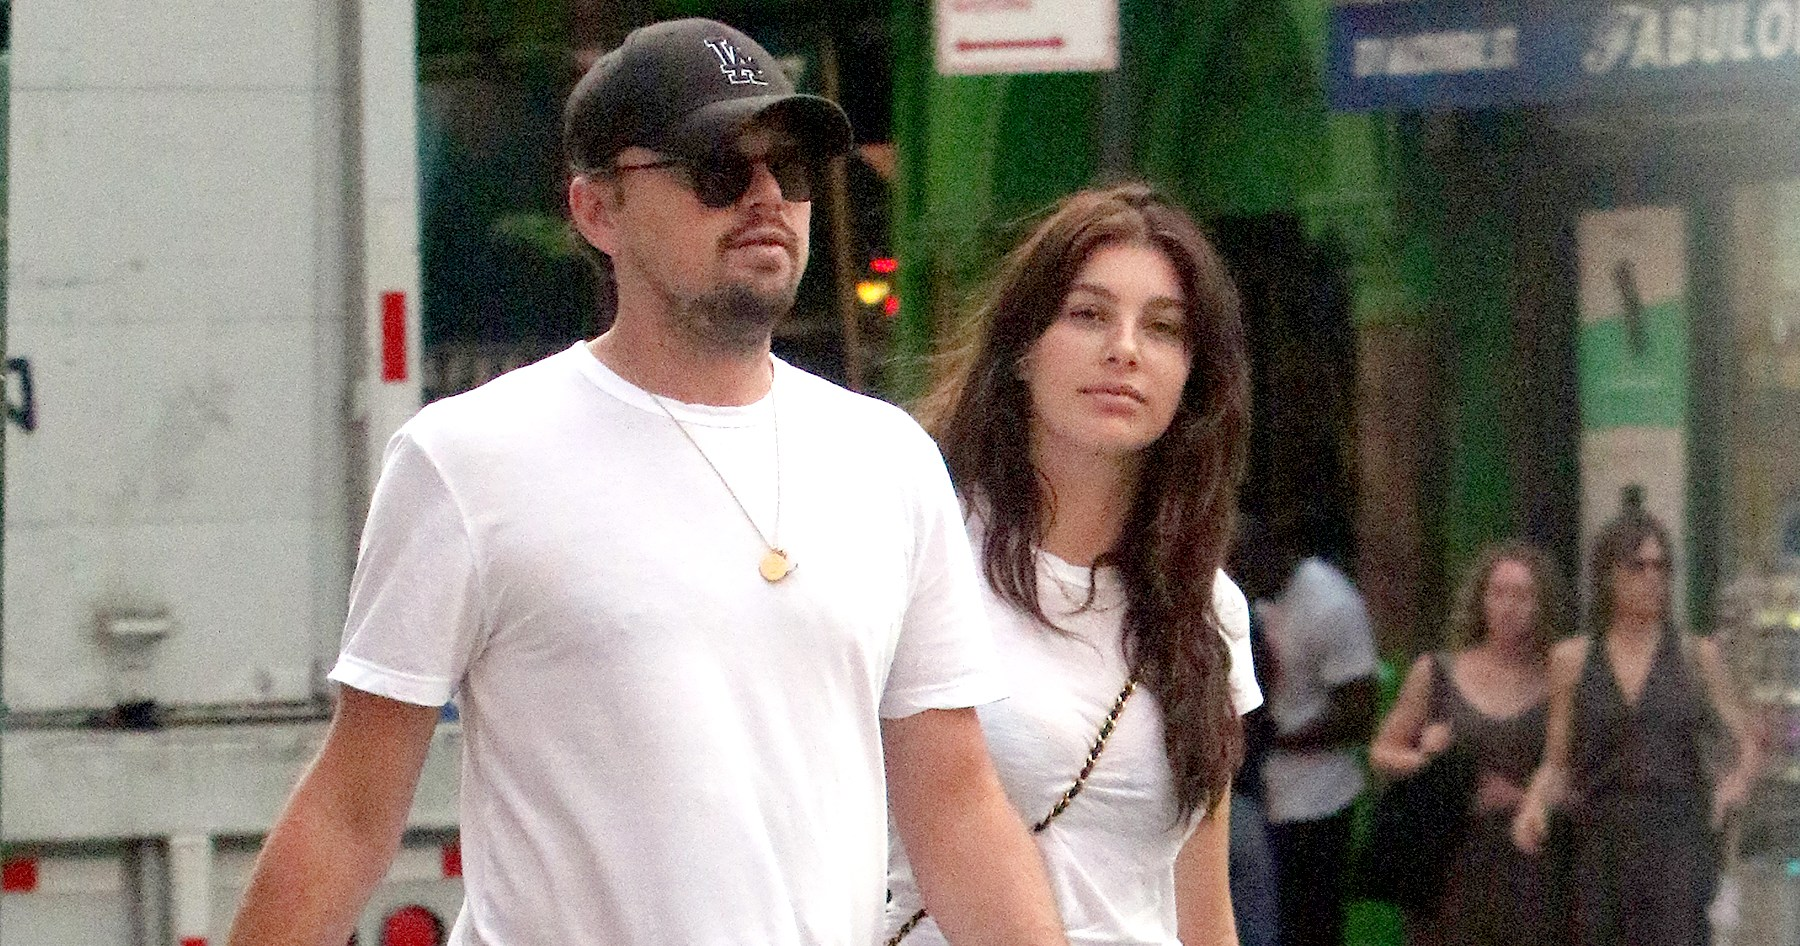 Leonardo DiCaprio and Cami Morrone Enjoy Massages During Date Night in West Hollywood